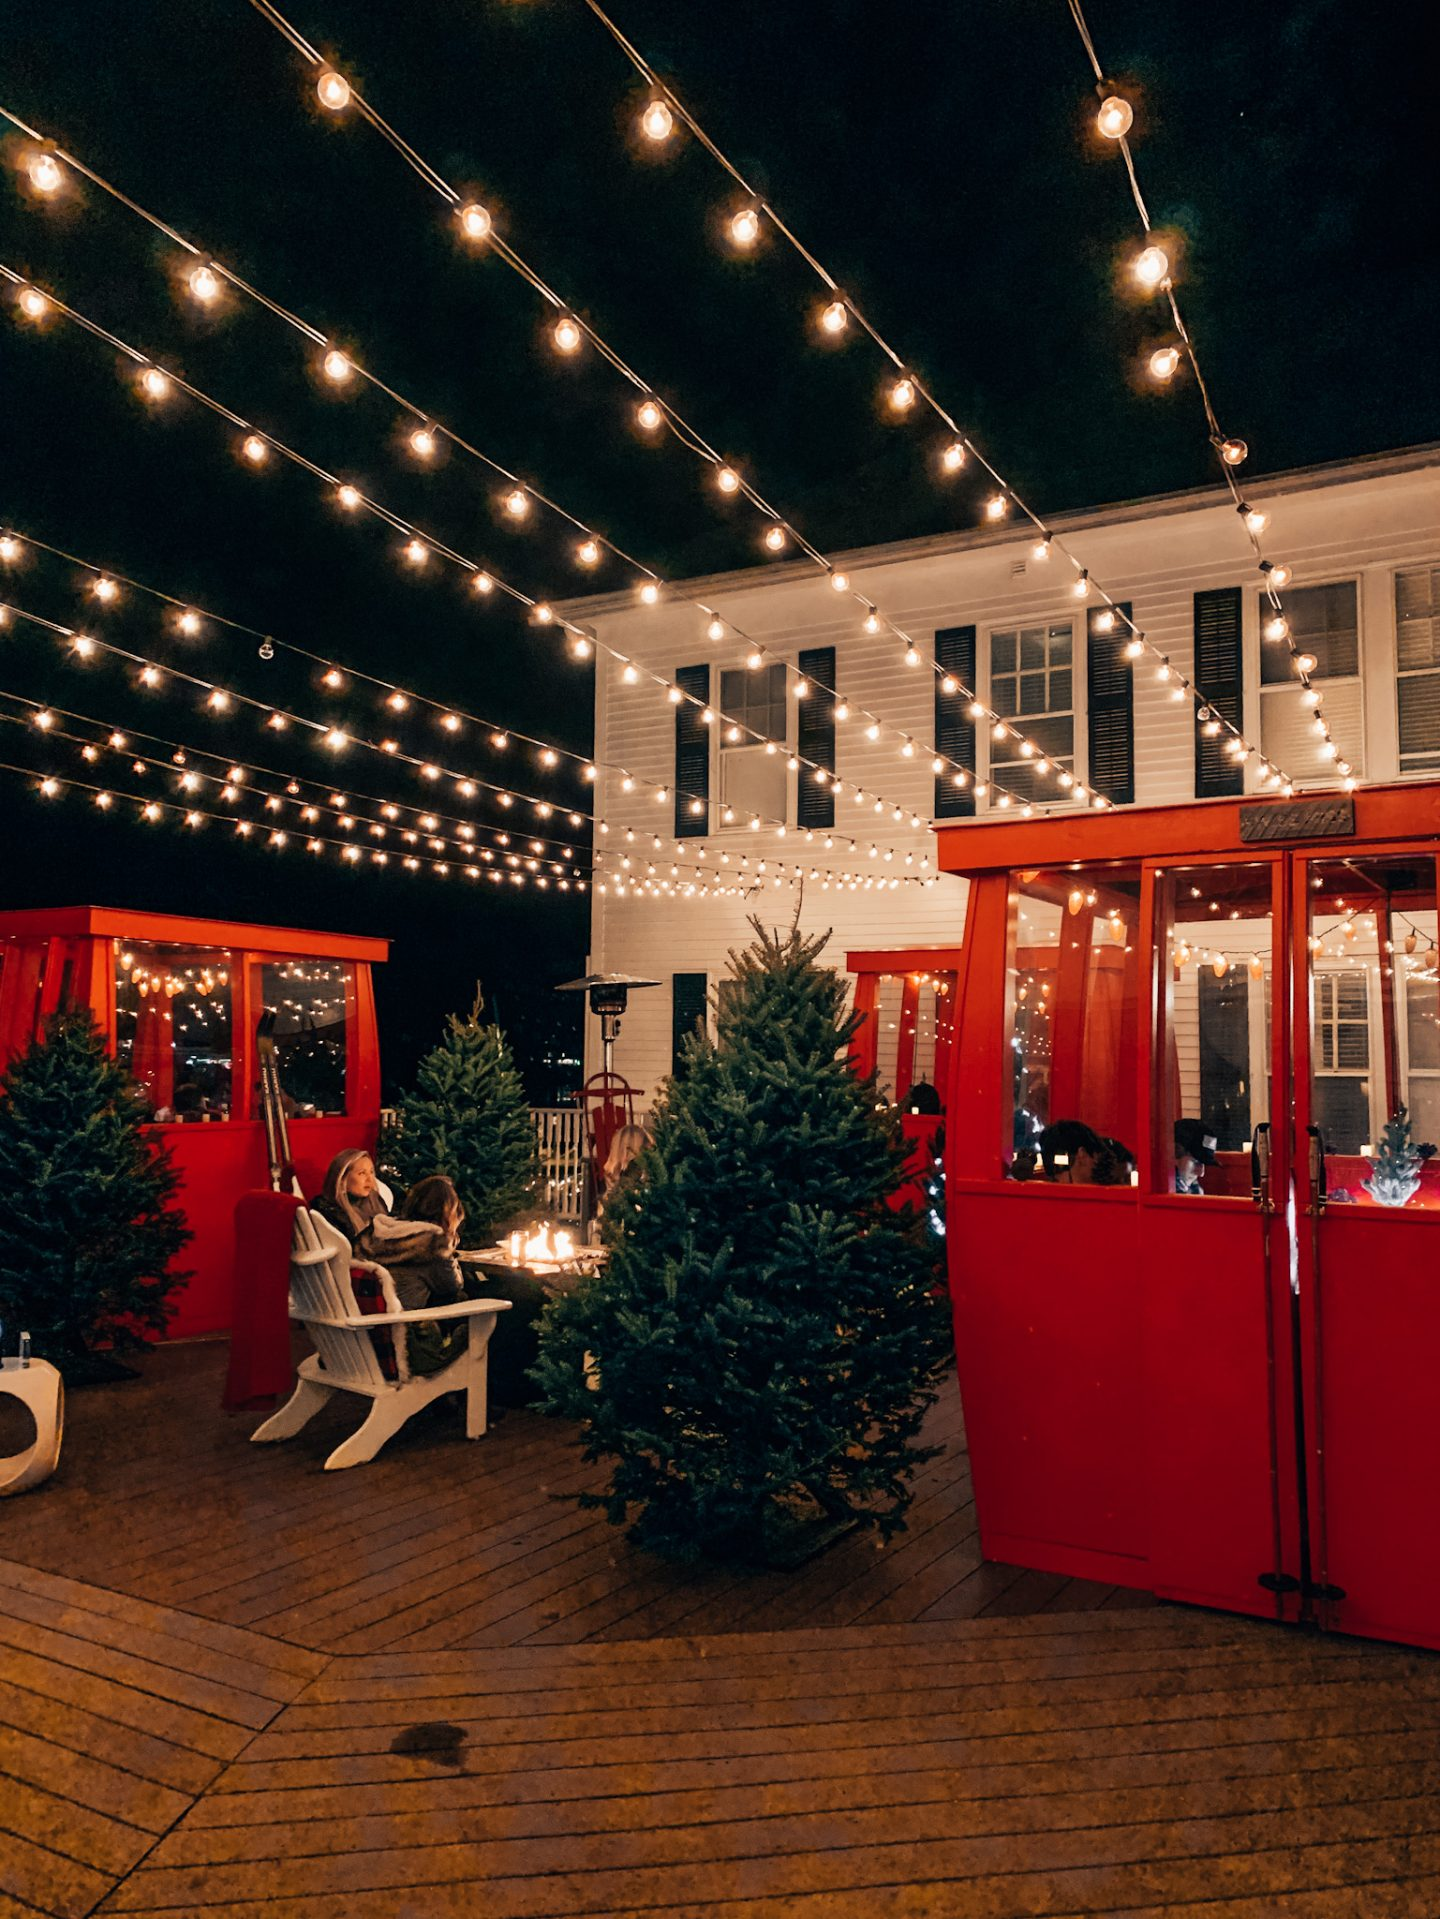 The Kennebunkport Inn during the holidays in New England